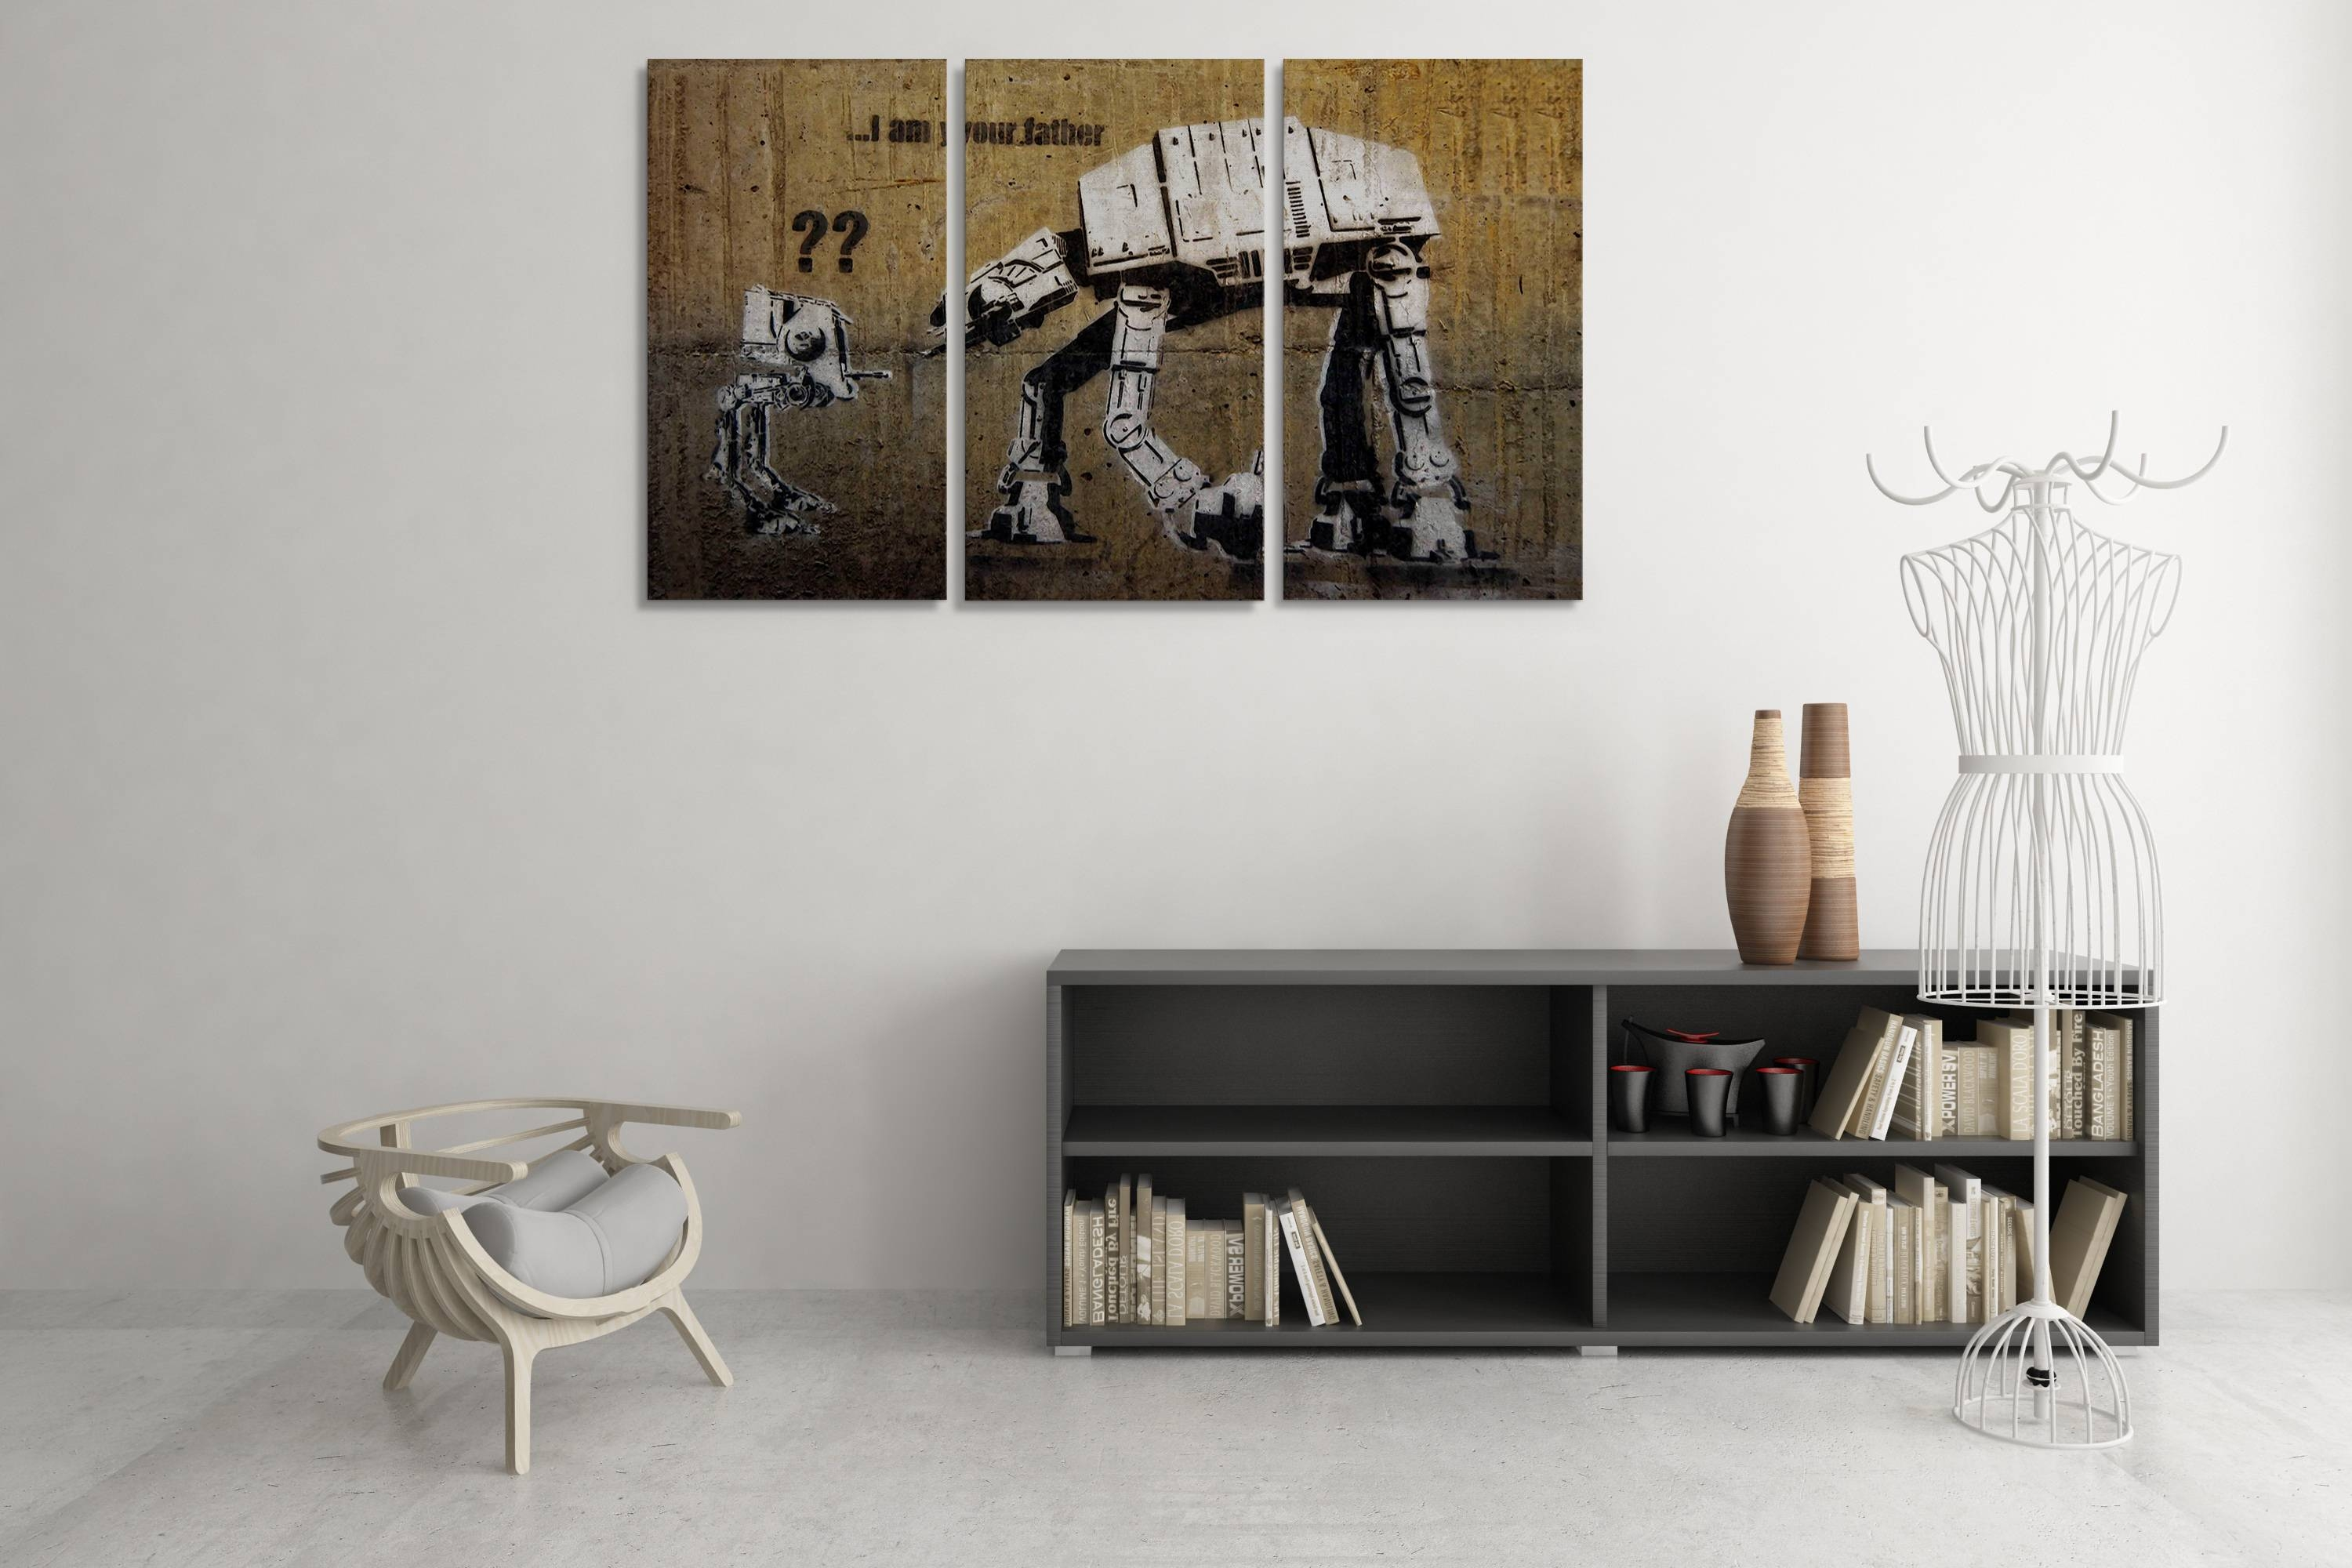 Banksy I Am Your Father (Star Wars) Triptych Canvas Wall Art Inside Most Popular Photography Wall Art (View 20 of 25)